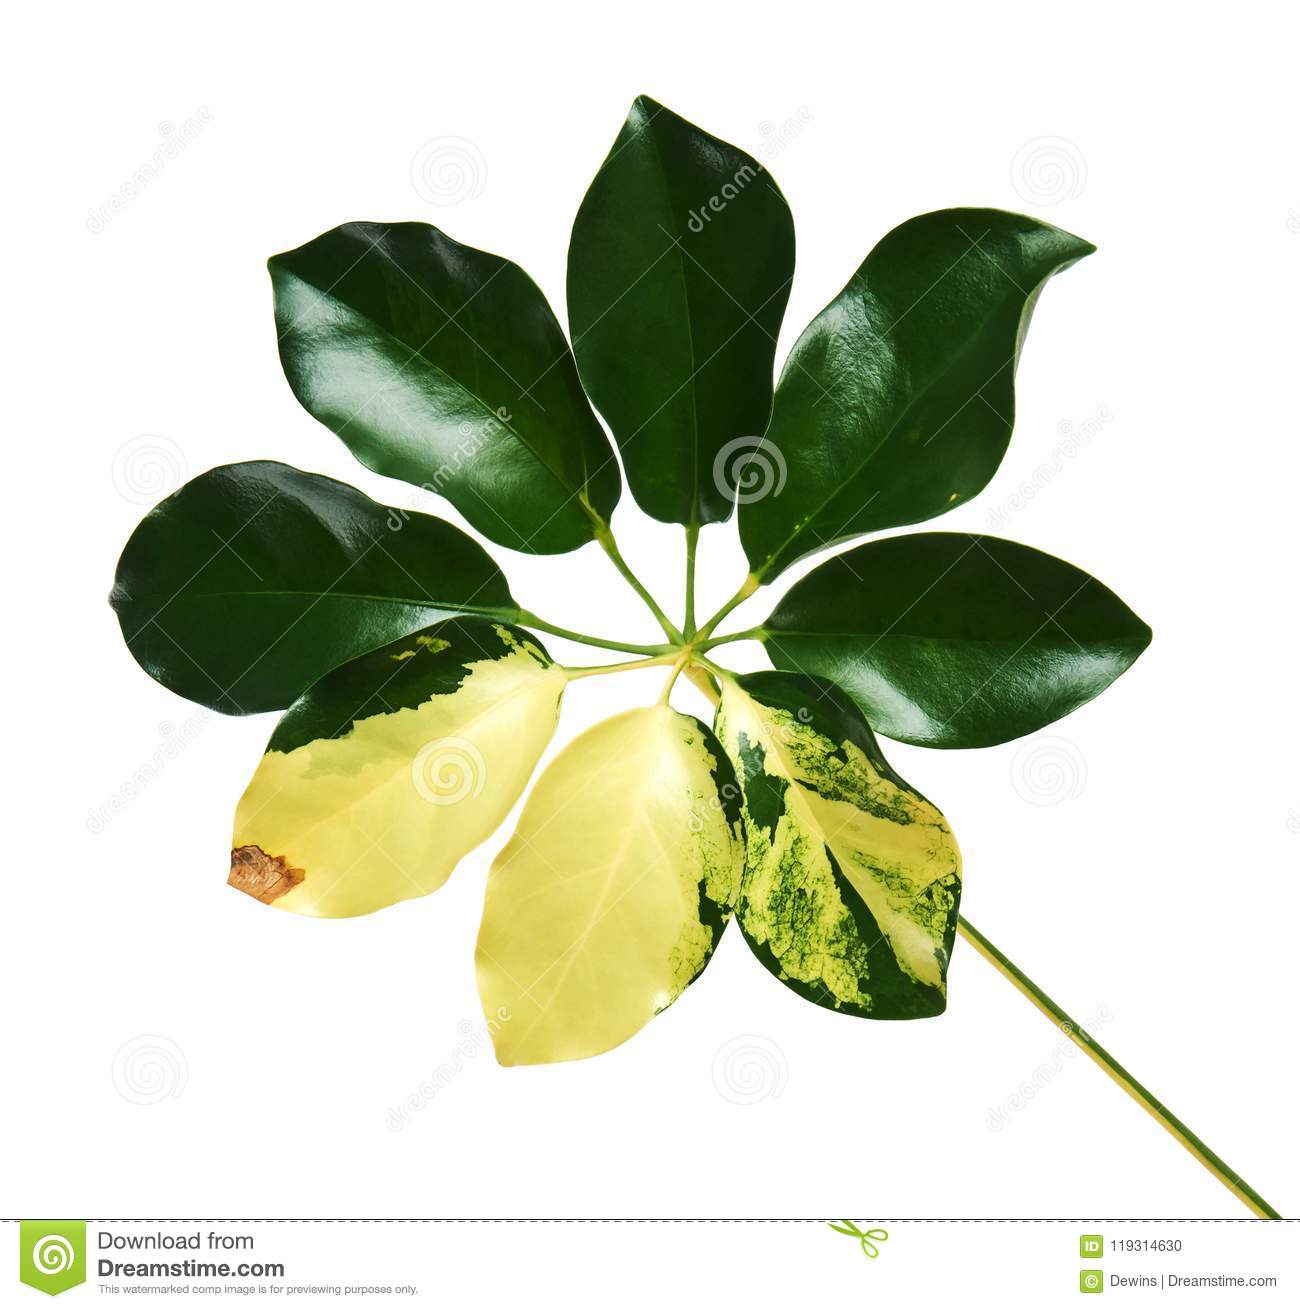 Schefflera variegated foliage `Gold Capella`, Exotic tropical leaf, isolated on white background with clipping path